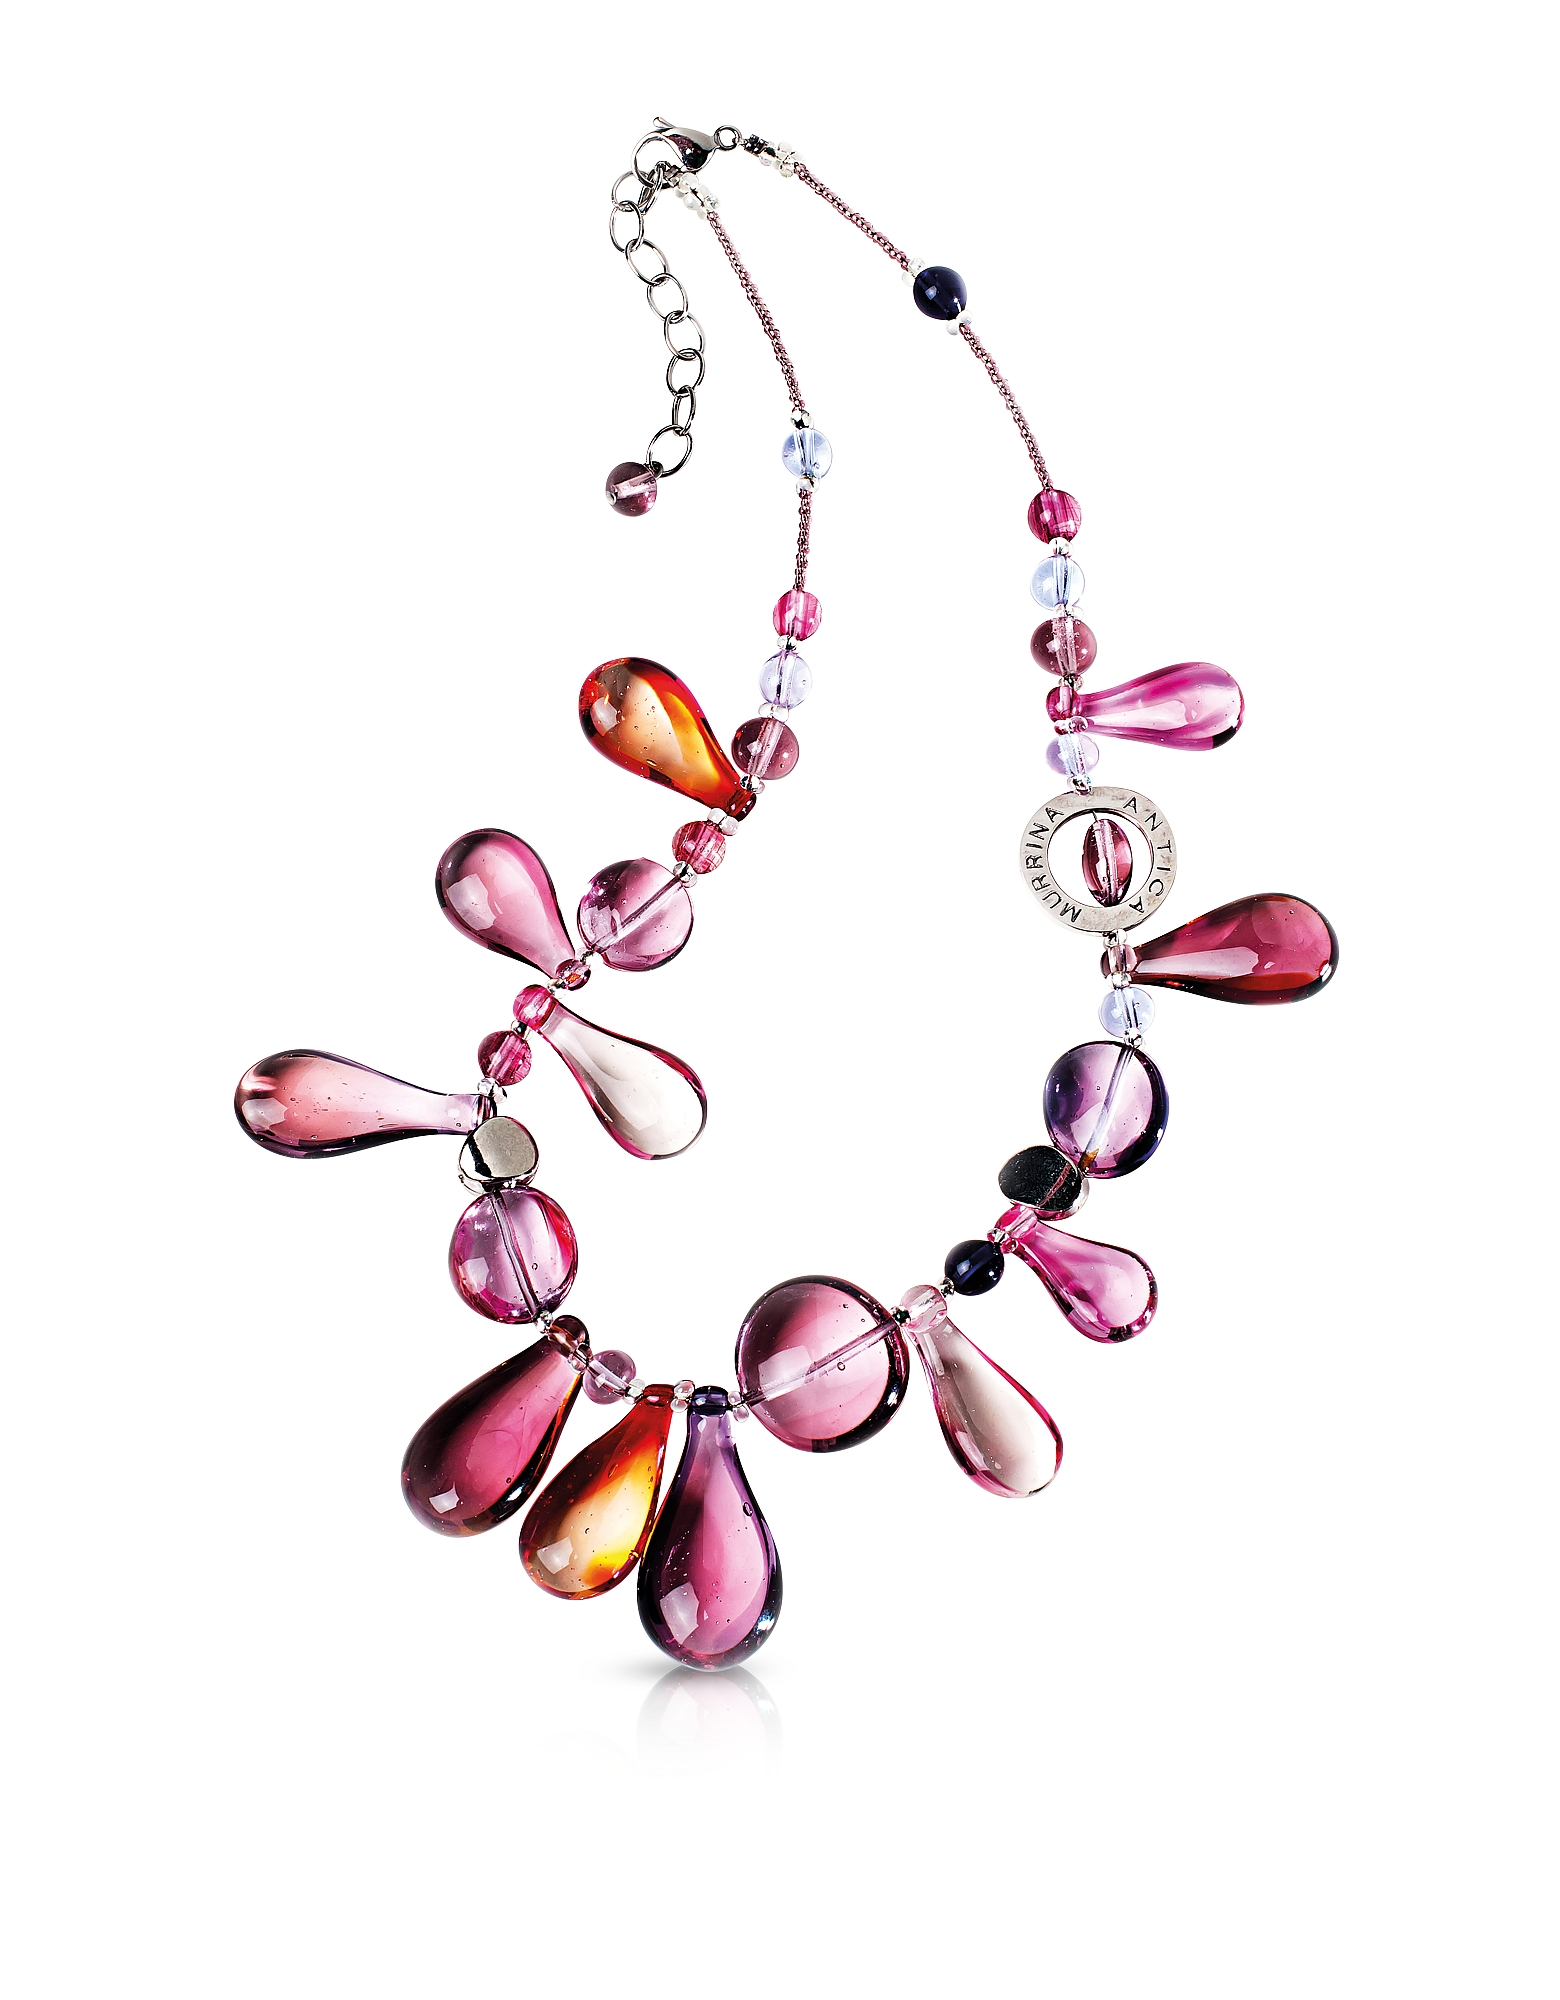 Antica Murrina Necklaces, Lapilli Murano Glass Necklace